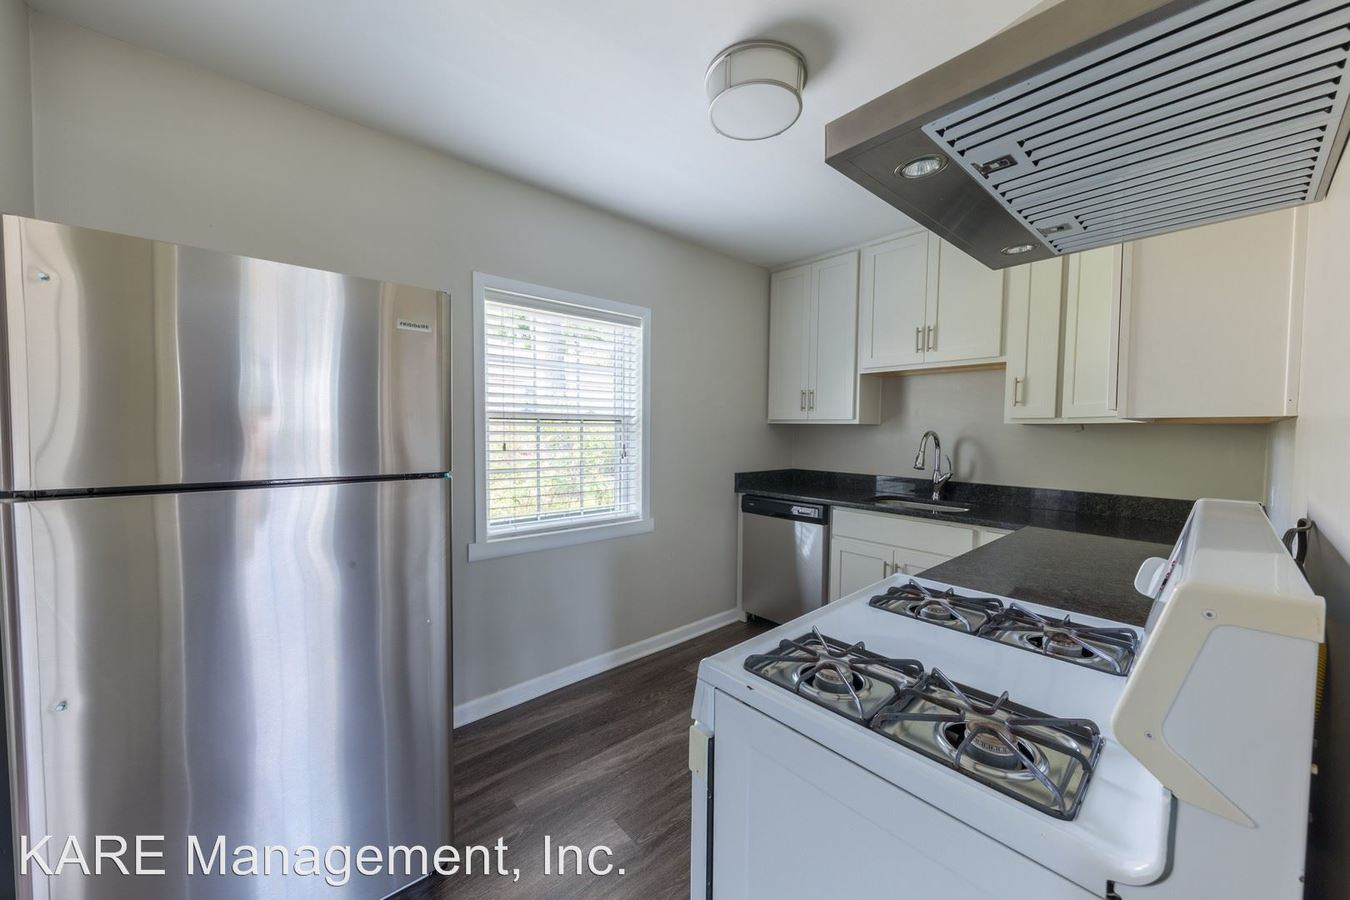 2 Bedrooms 1 Bathroom Apartment for rent at Lake Bluff in Lake Bluff, IL